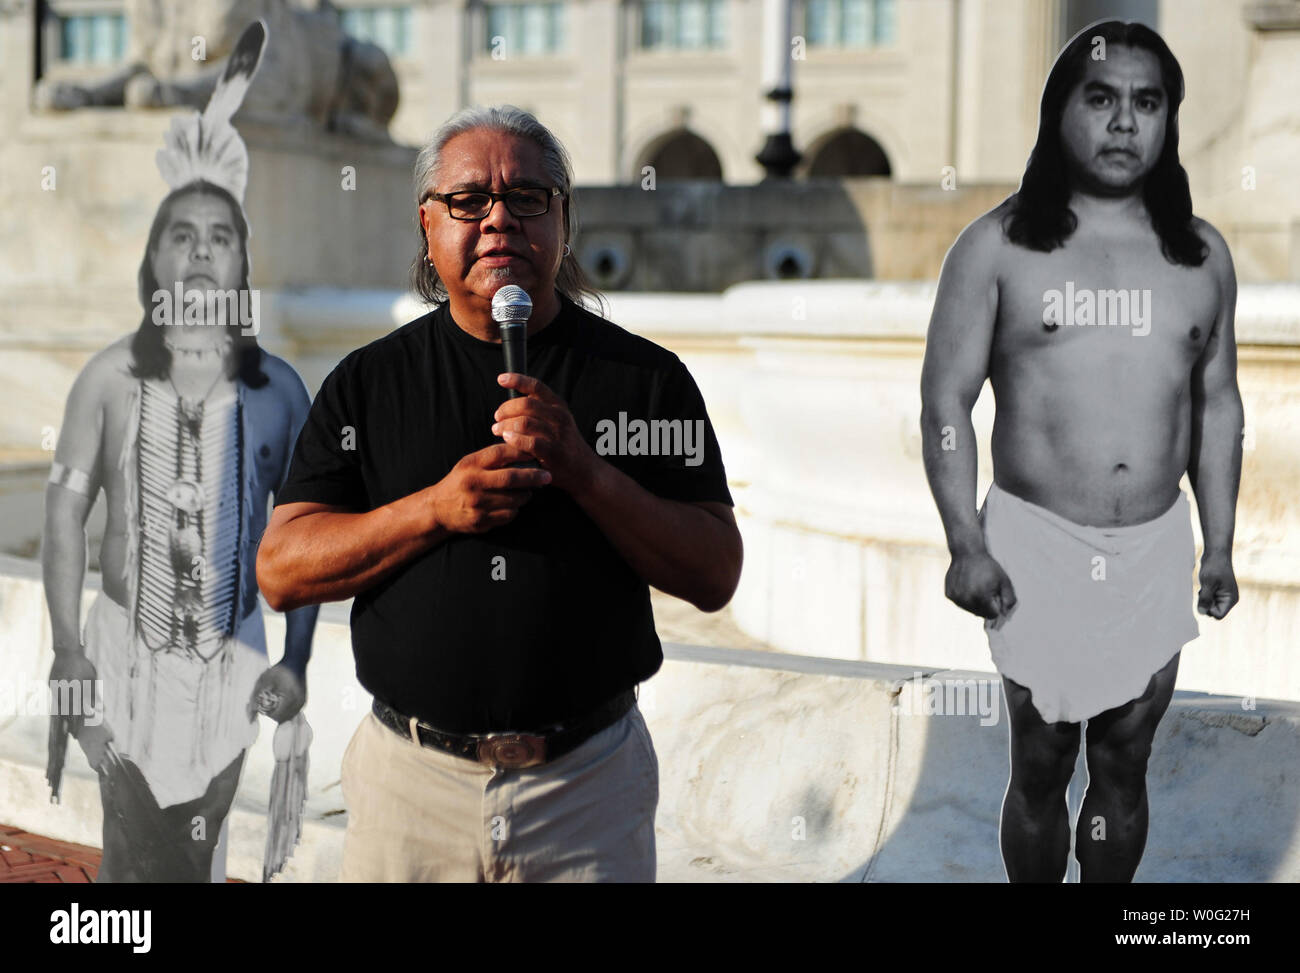 Performance artist James Luna speaks during his piece titled 'Take a Picture With a Real Indian,' in front of the Christopher Columbus Statue on Columbus Day in Washington on October 11, 2010. In the piece Luna invites members of the audience to pose with him as he confronts commonly held perceptions of Natives Americans.   UPI/Kevin Dietsch - Stock Image